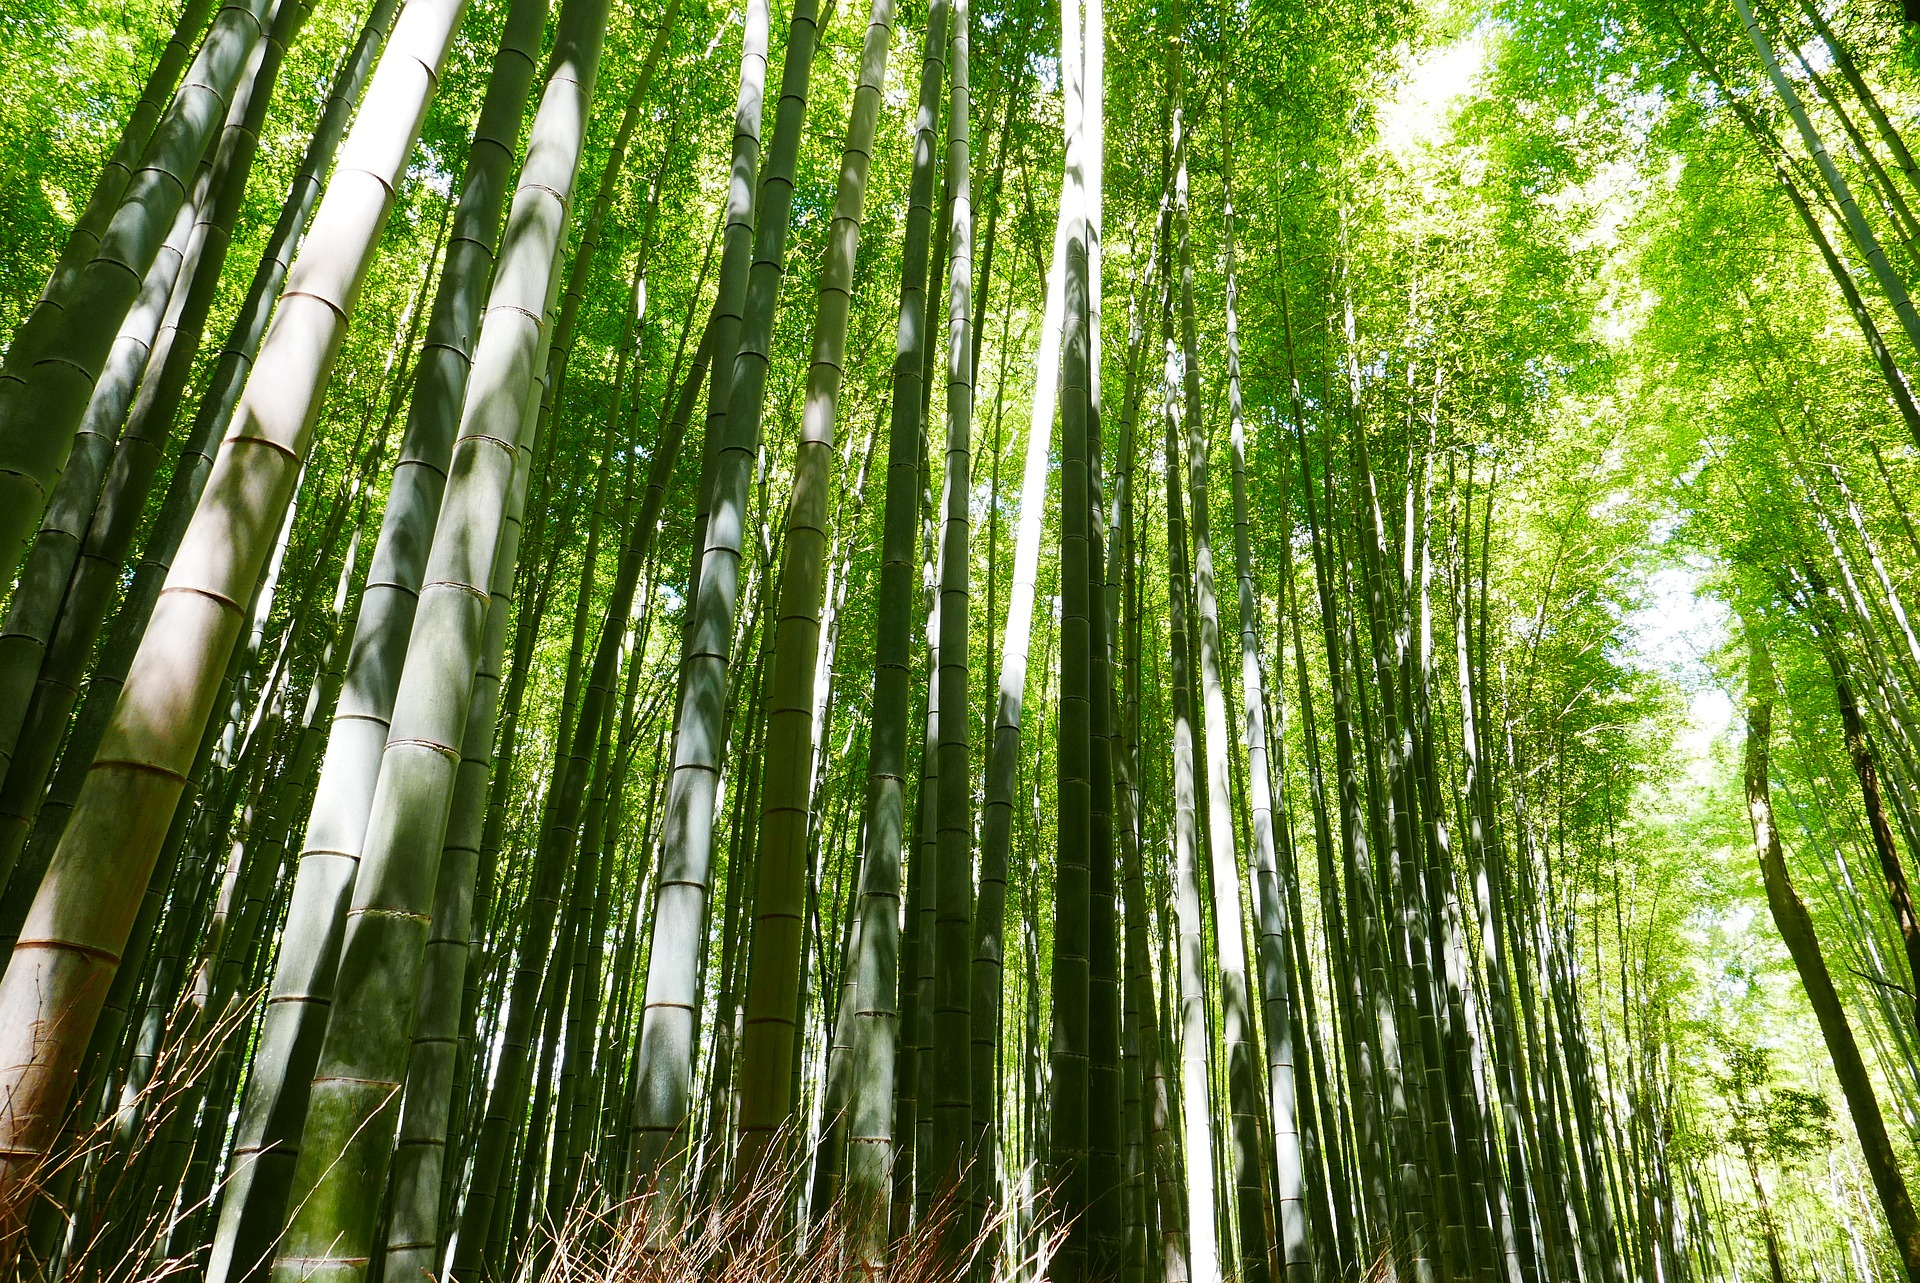 Bamboo is a sustainable building material